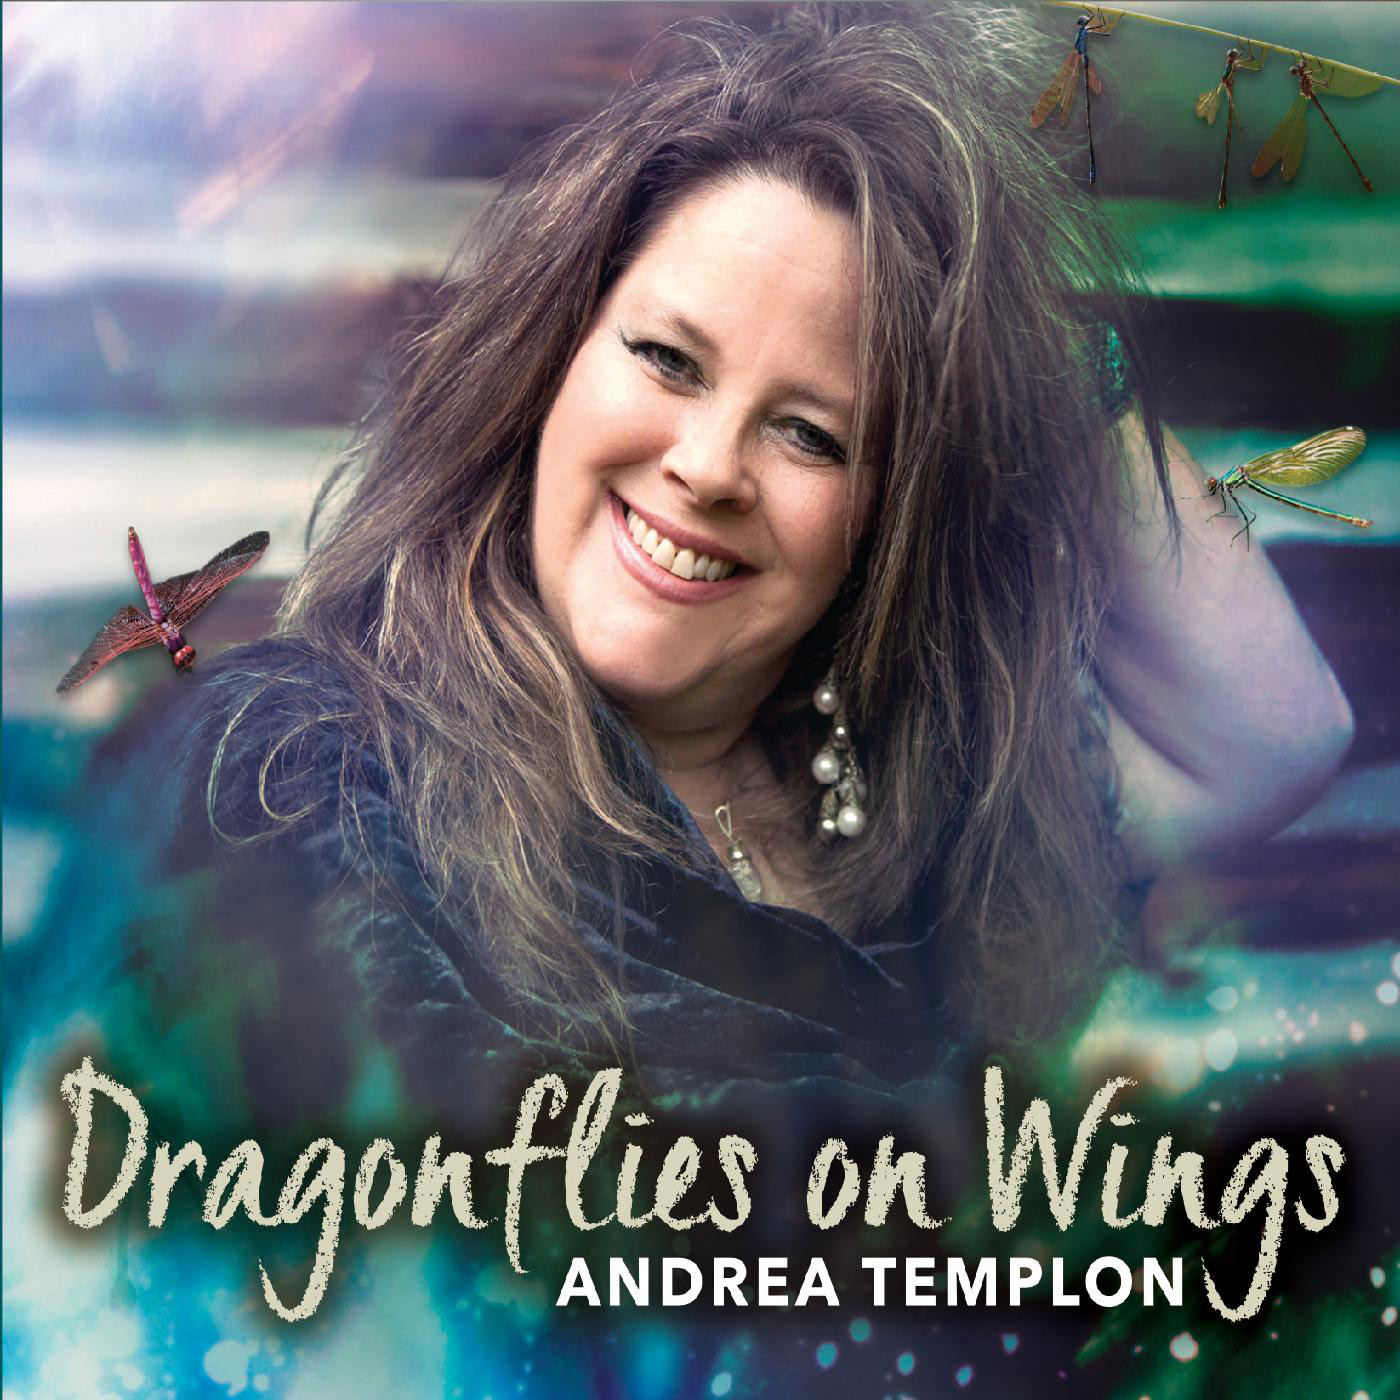 Dragonflies-on-Wings-solo-music-cd--by-andrea-templon-cover-art.jpg